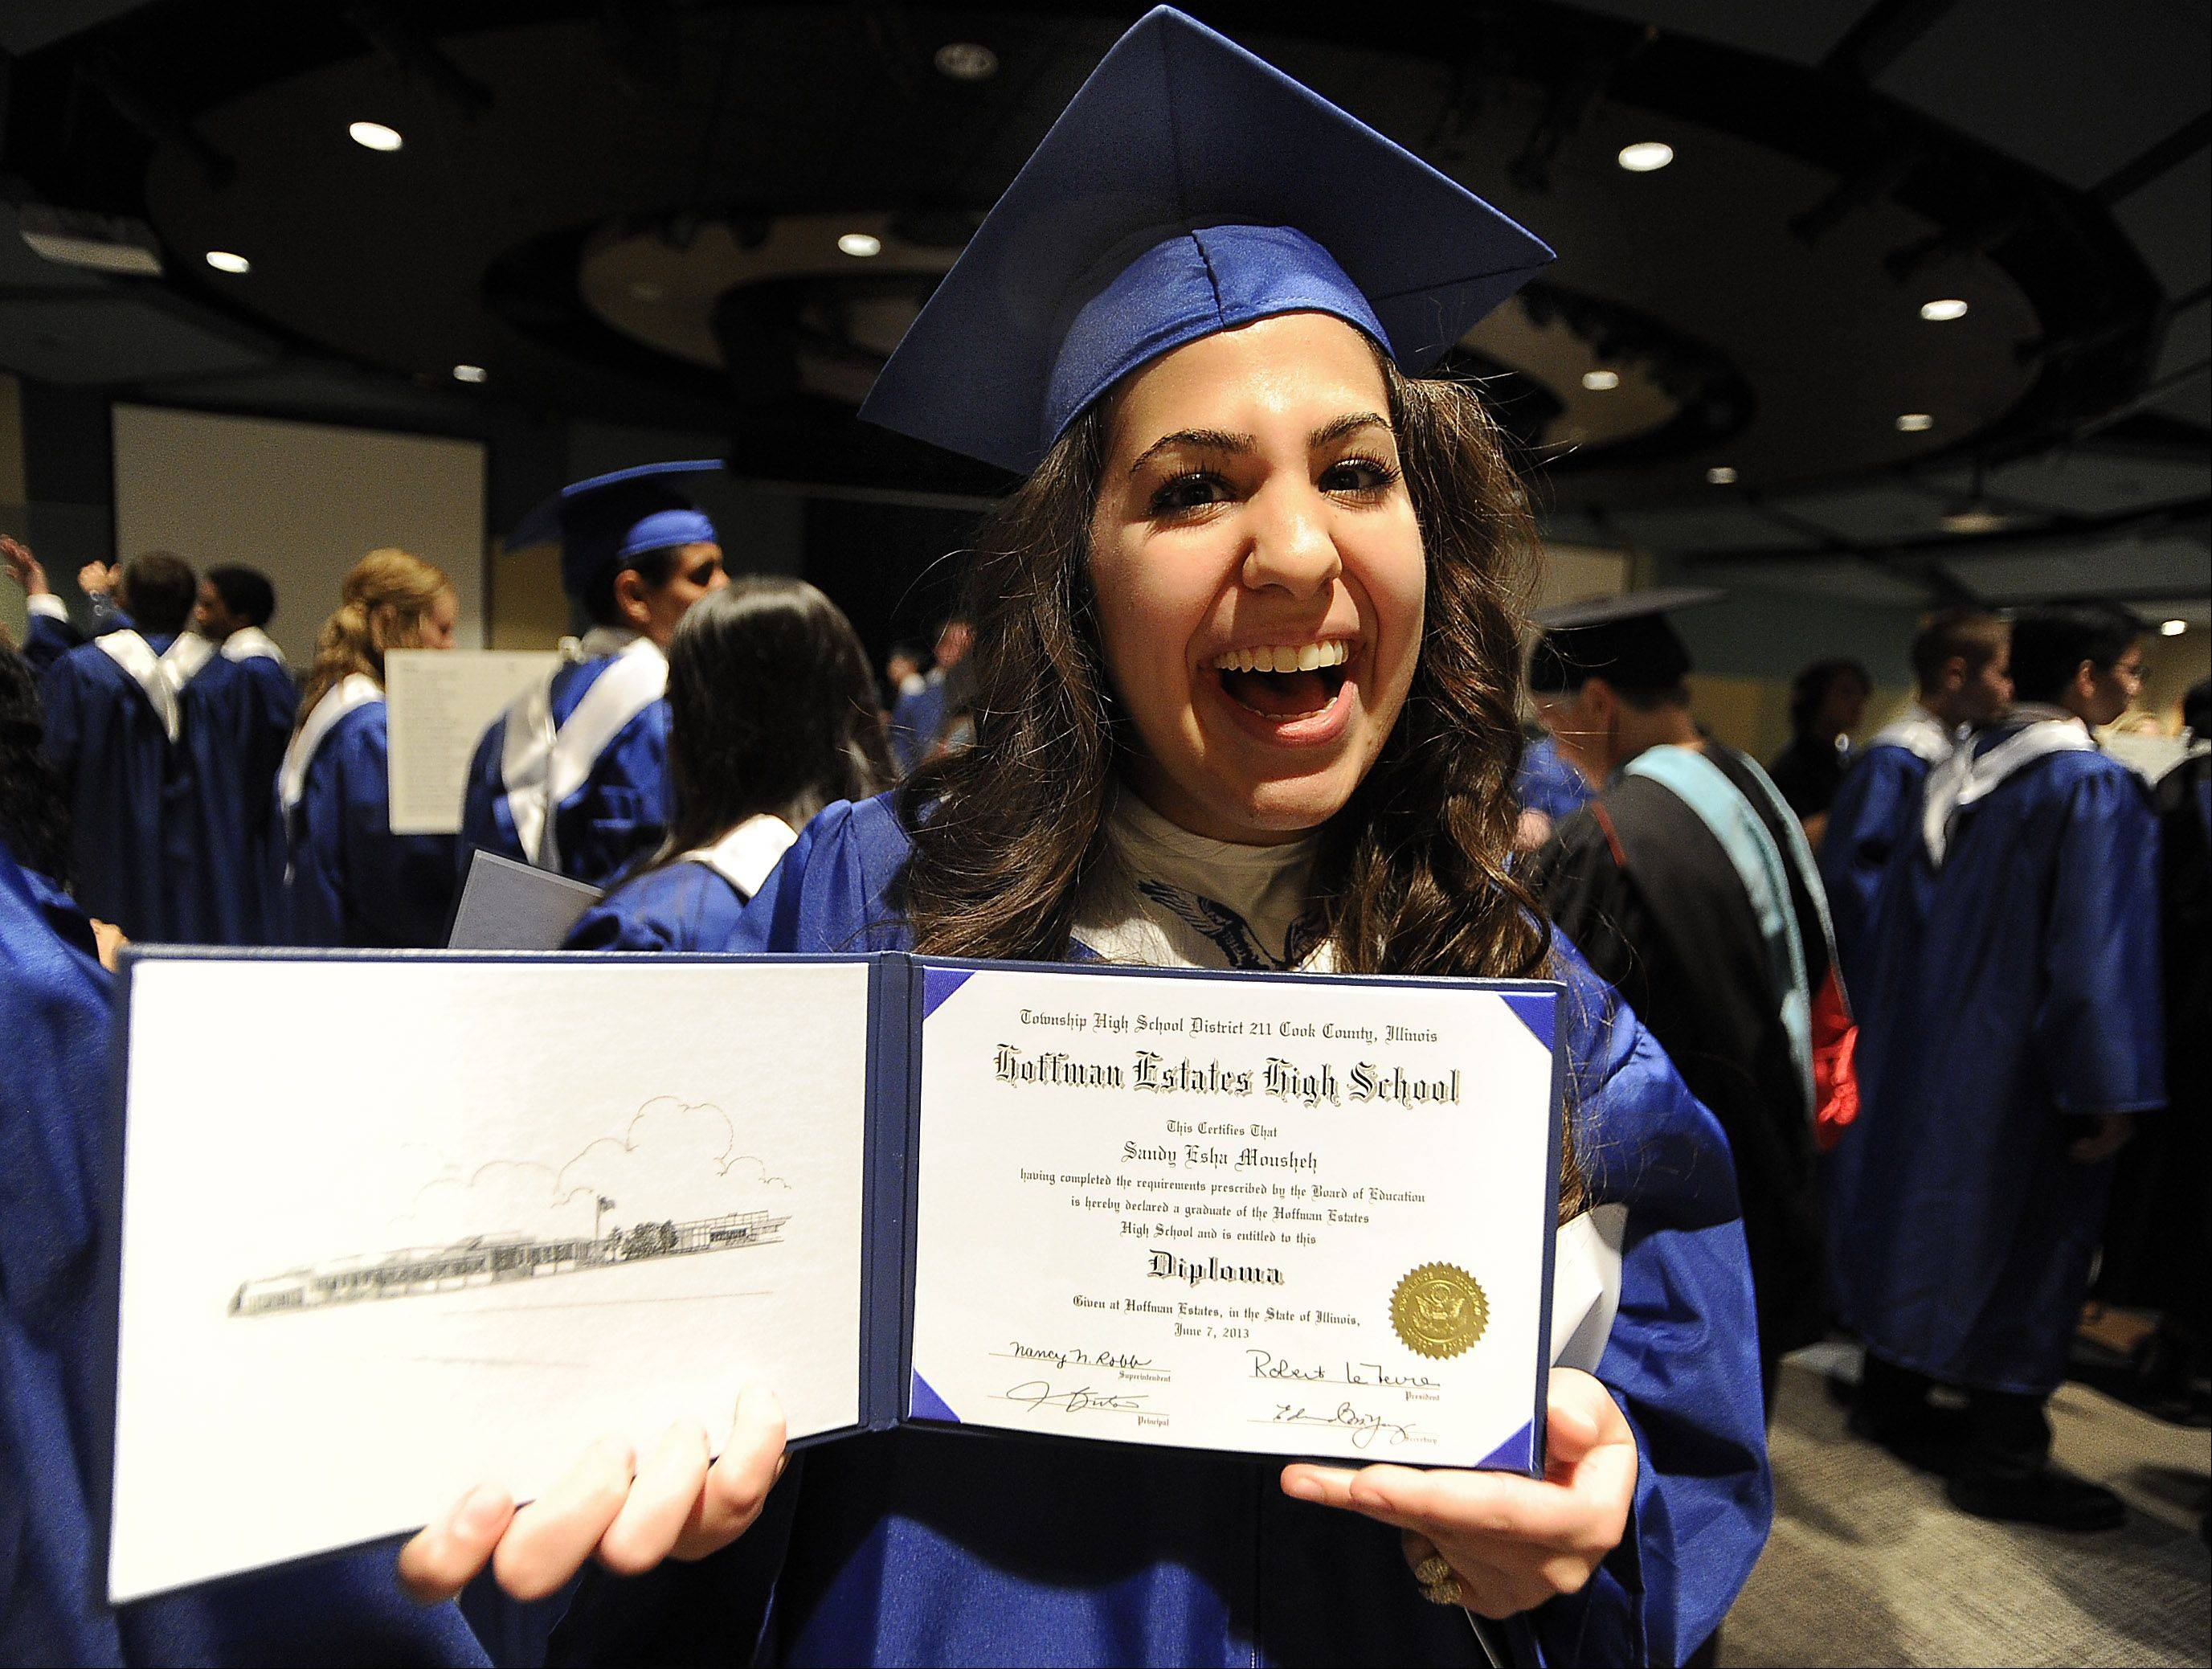 Hoffman Estates High School graduate Sandy Mousheh,18, of Hoffman Estates shows off her diploma .